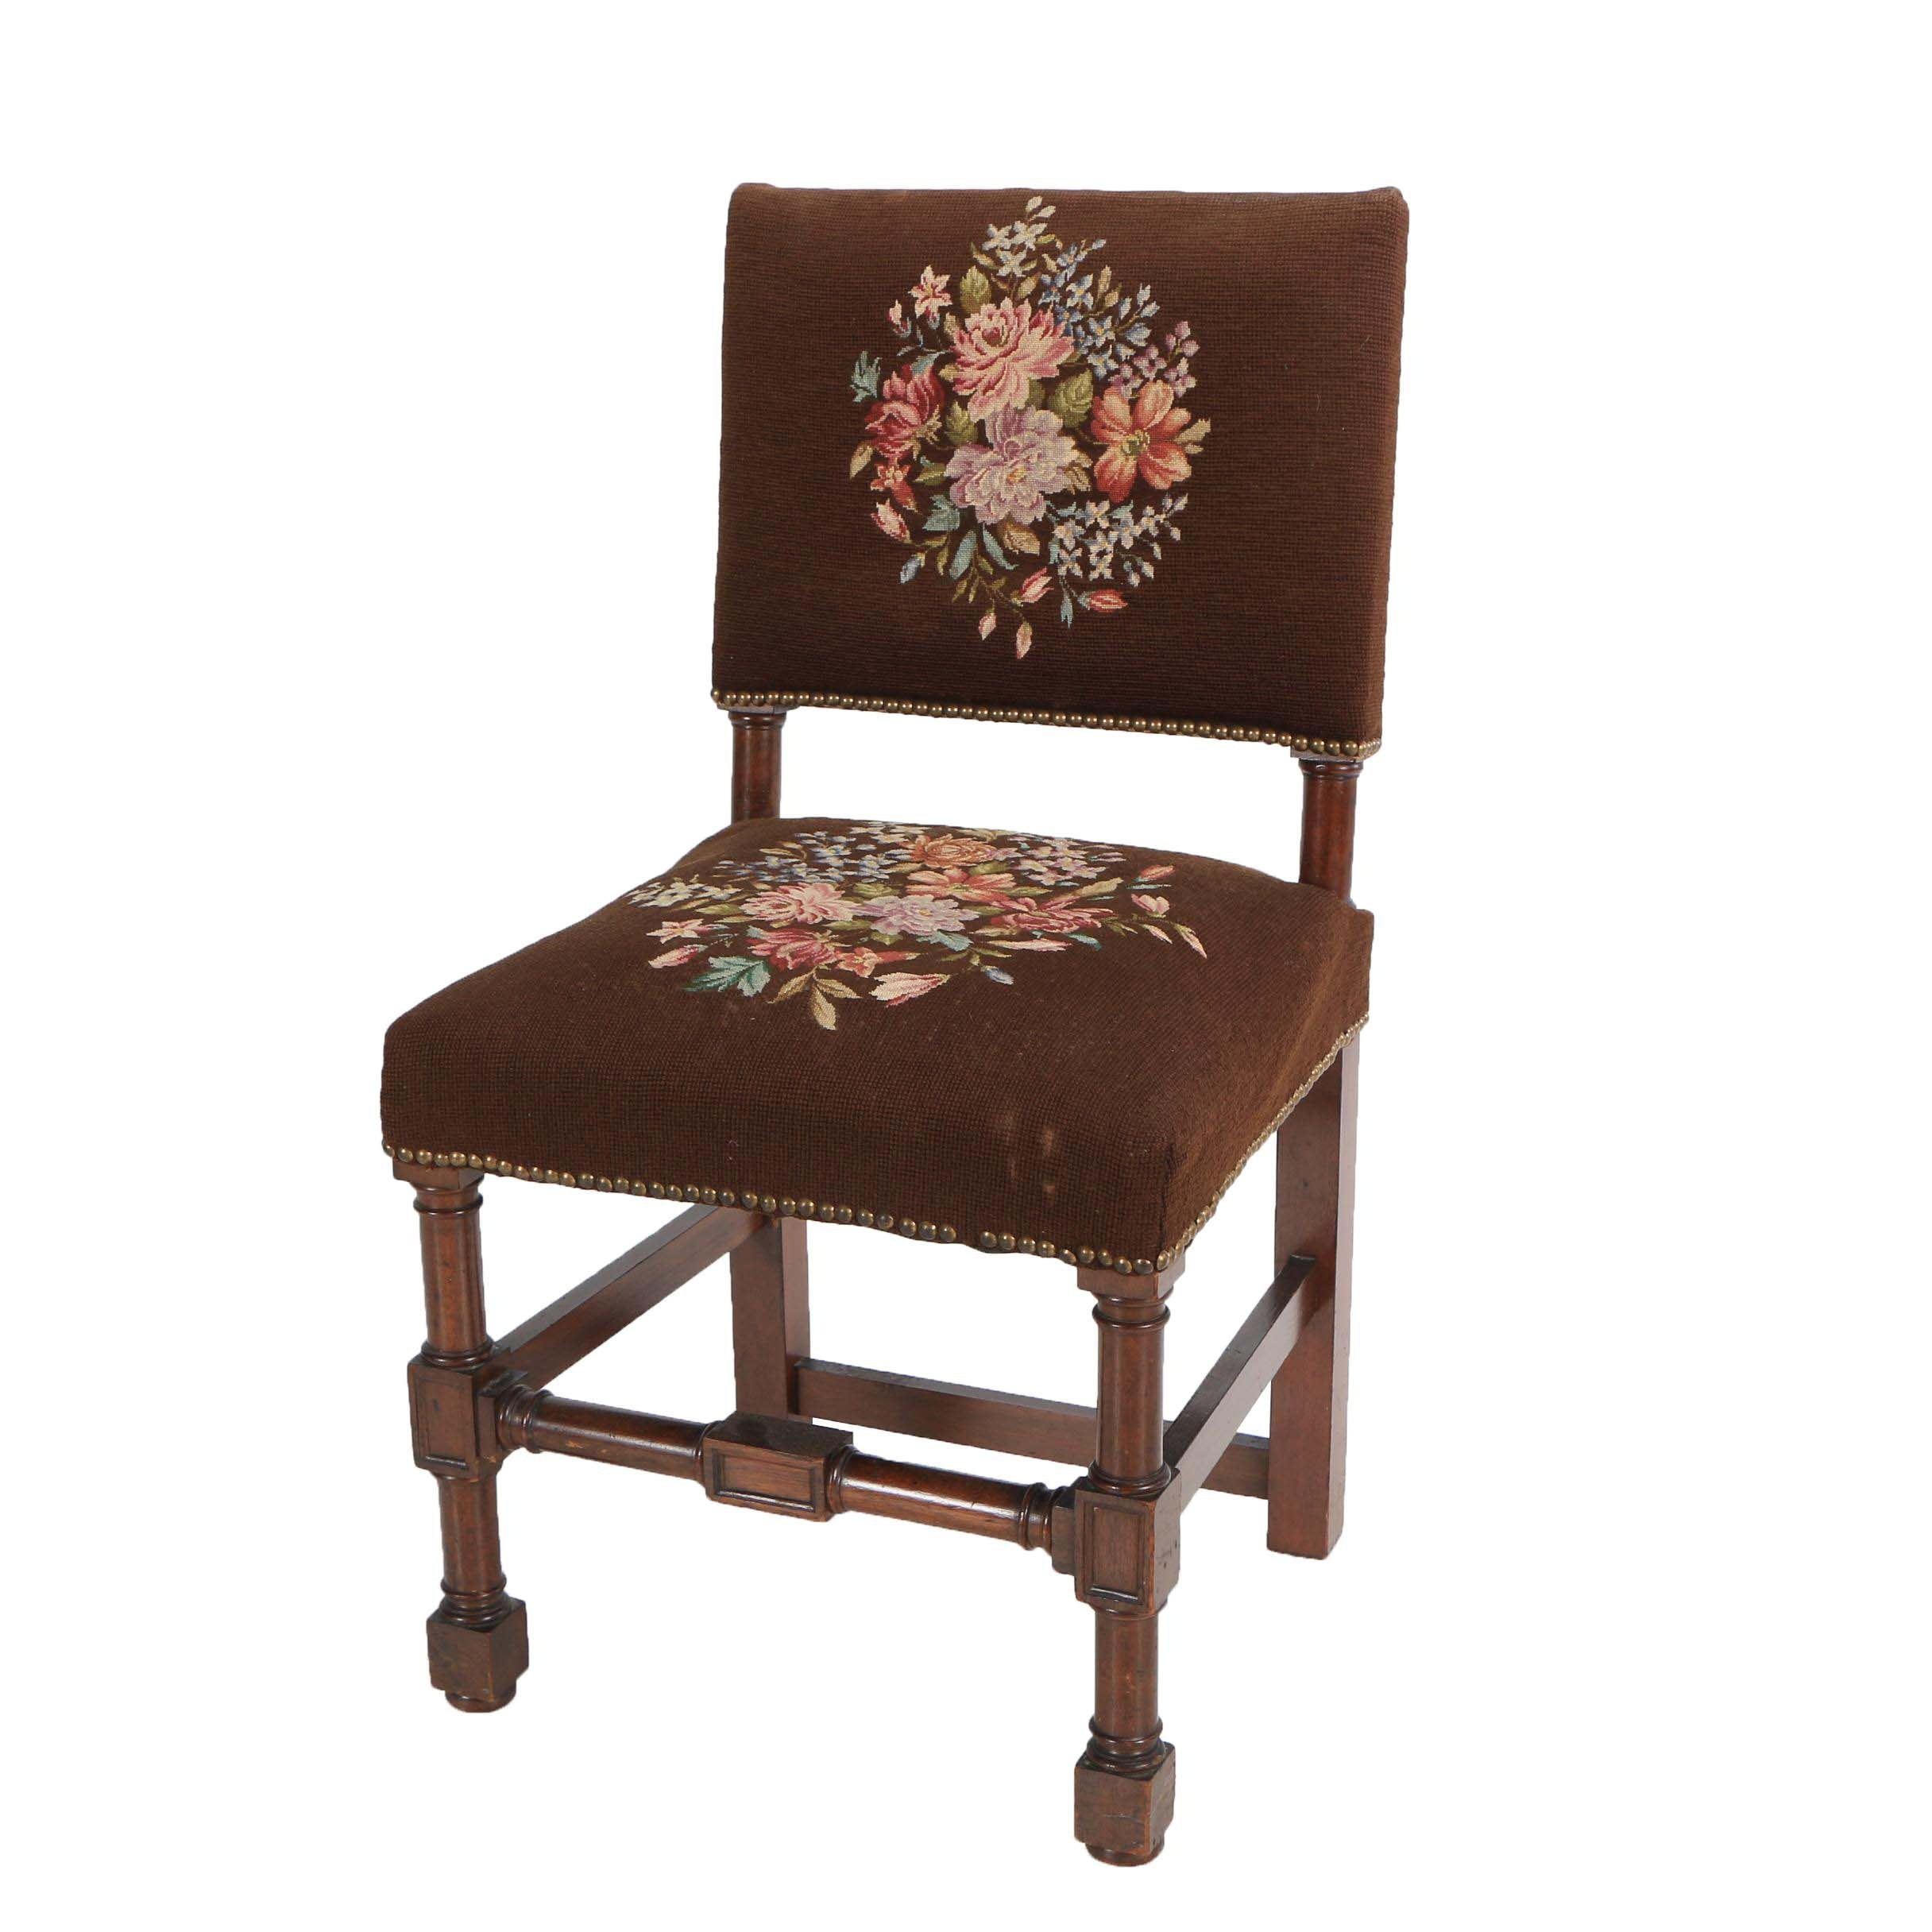 Vintage Jacobean Style Side Chair with Needlepoint Upholstery